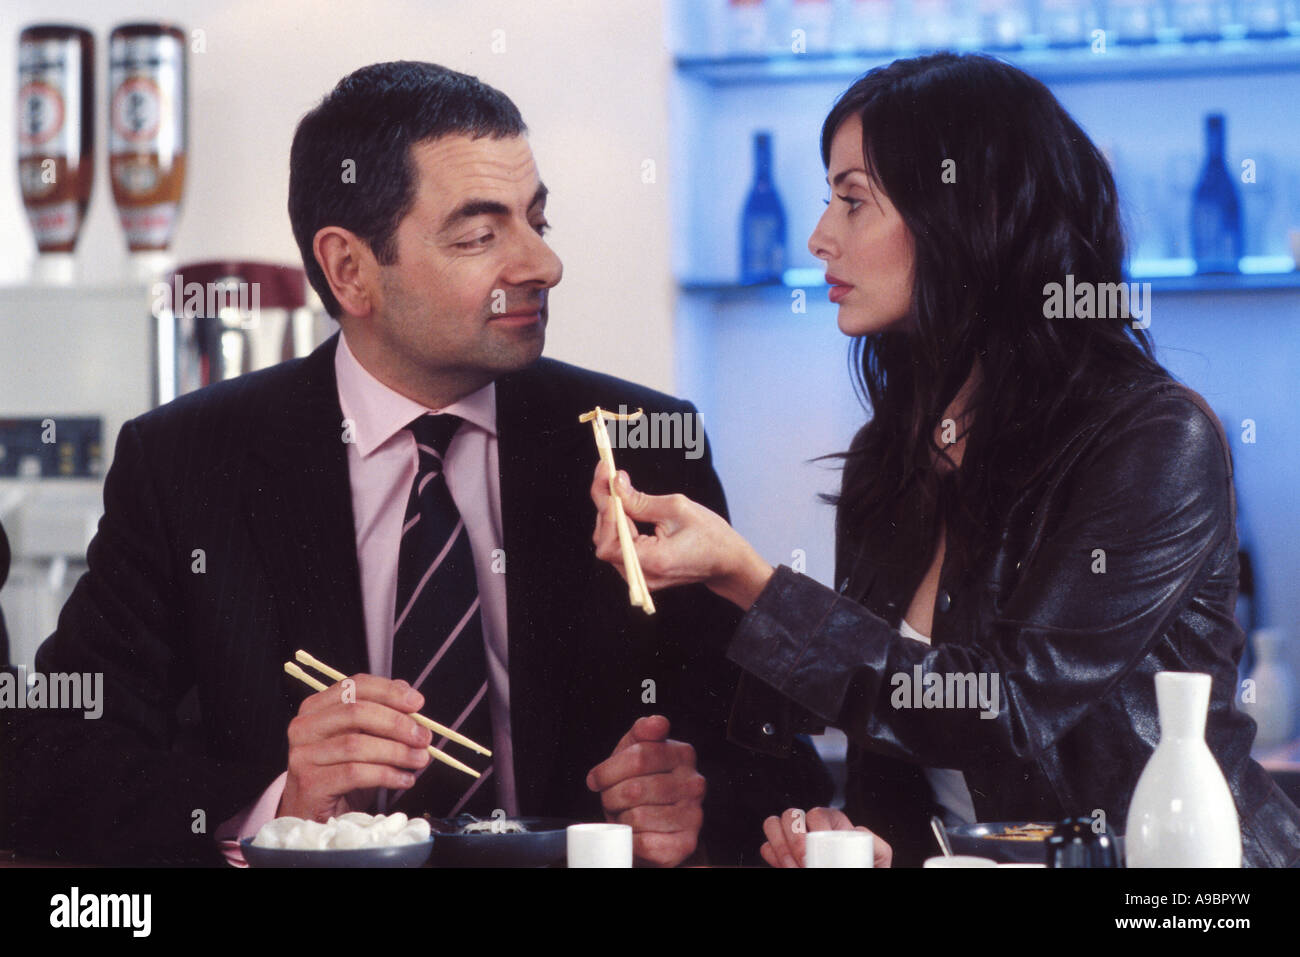 JOHNNY ENGLISH - 2003 Universal film with Rowan Atkinson and Natalie Imbruglia - Stock Image